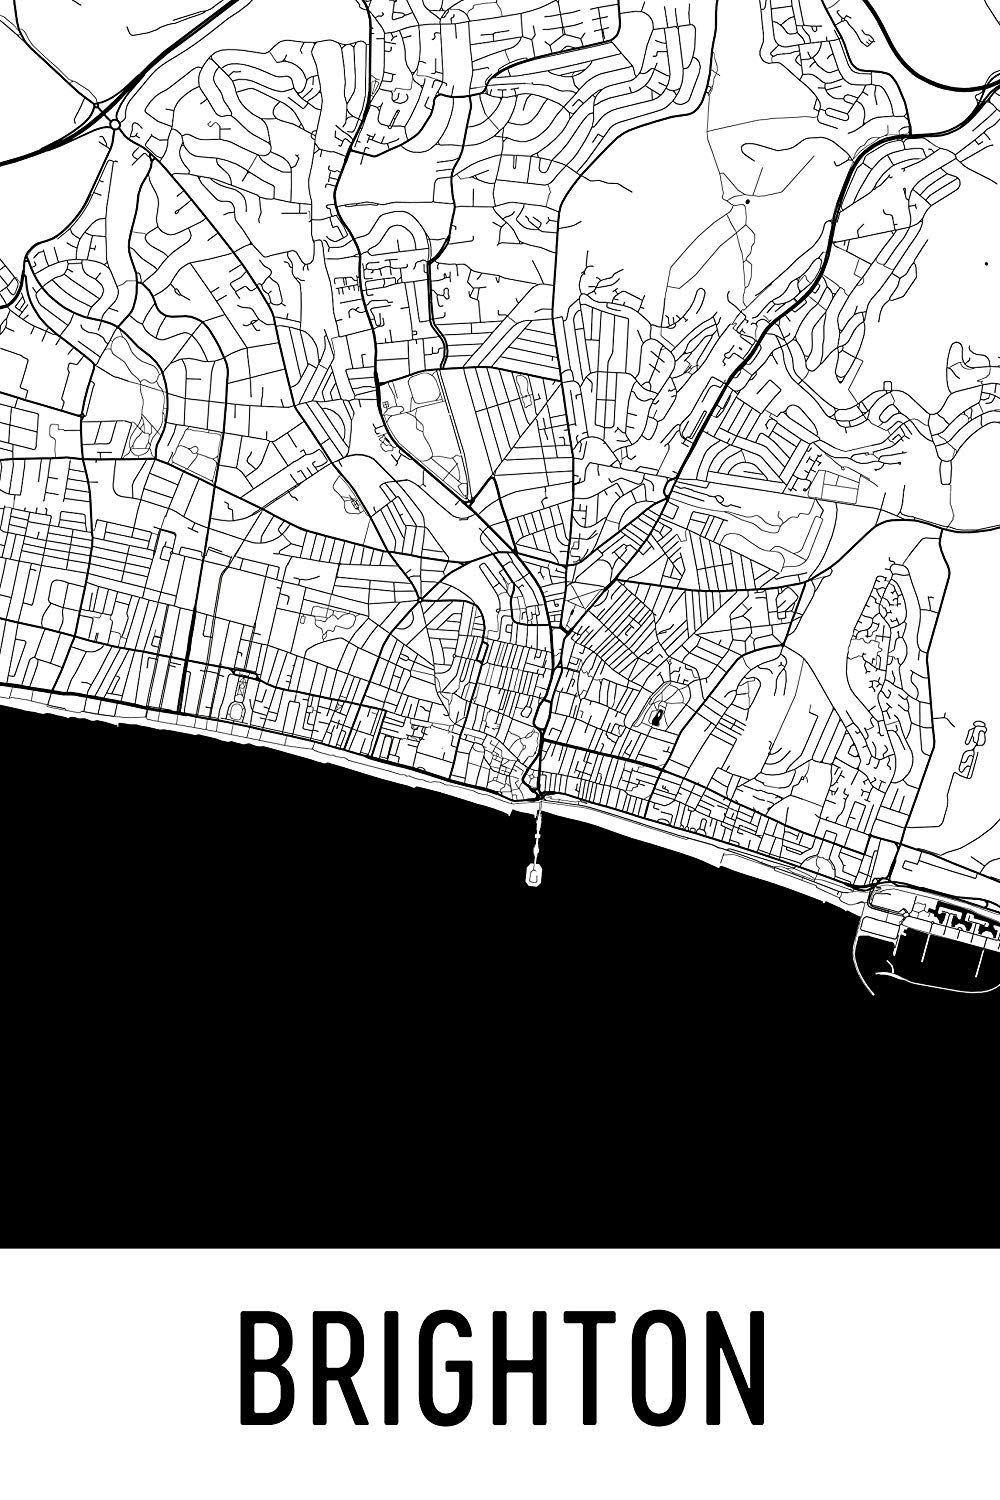 Map Of England Brighton.Modern Map Art Brighton Print Brighton Art Brighton Map Brighton